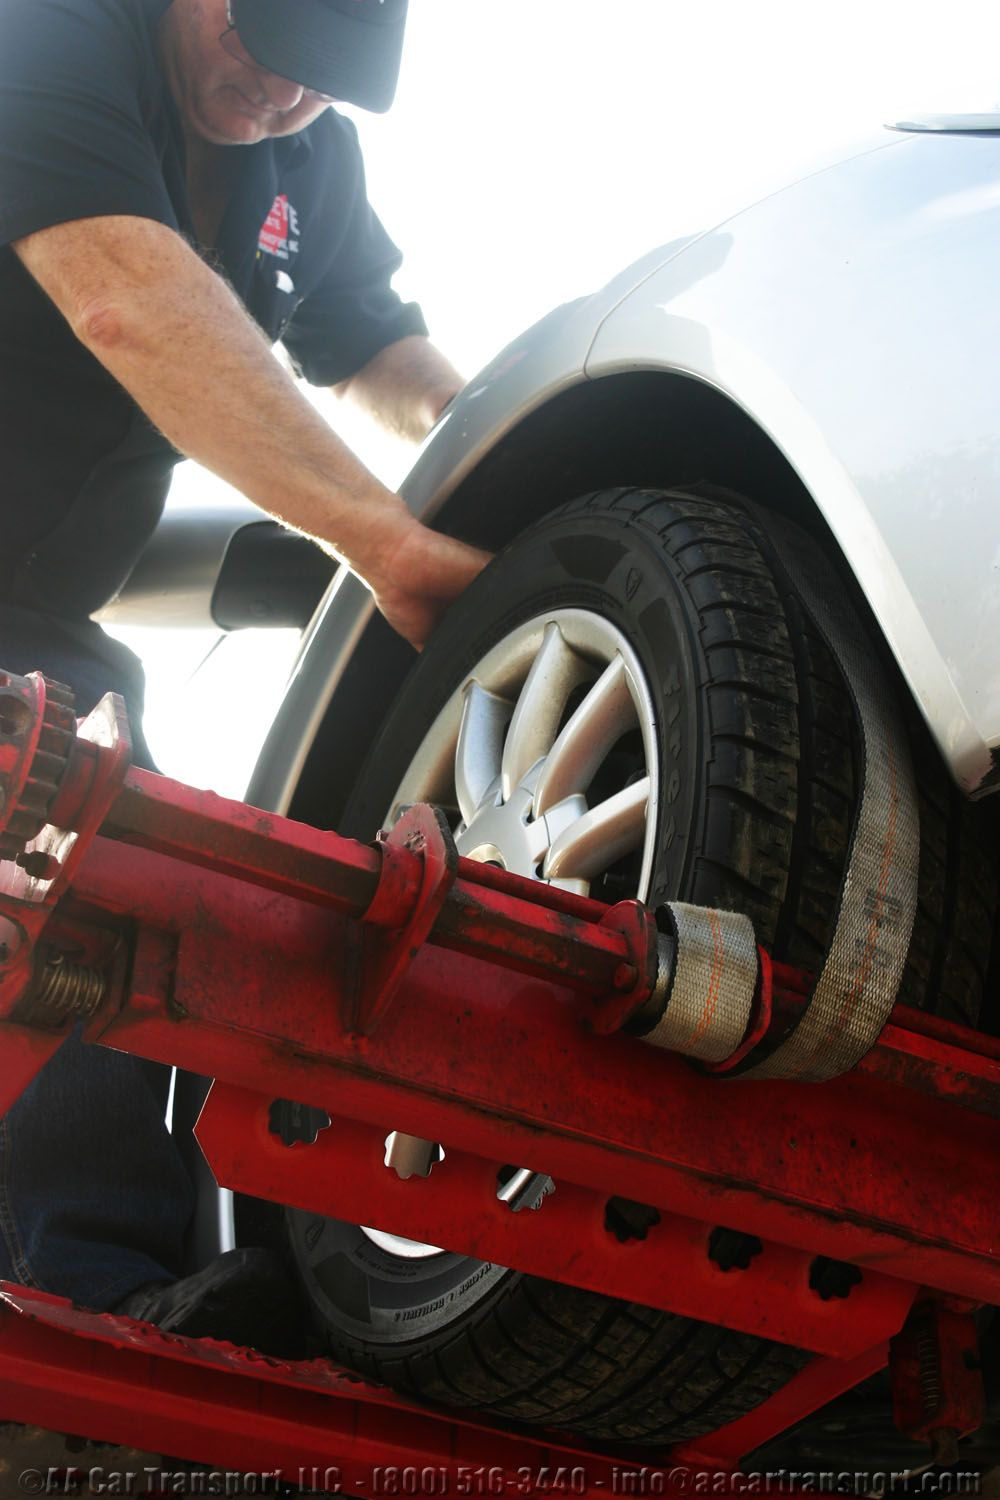 How to ship a car Place tire straps on wheels to secure